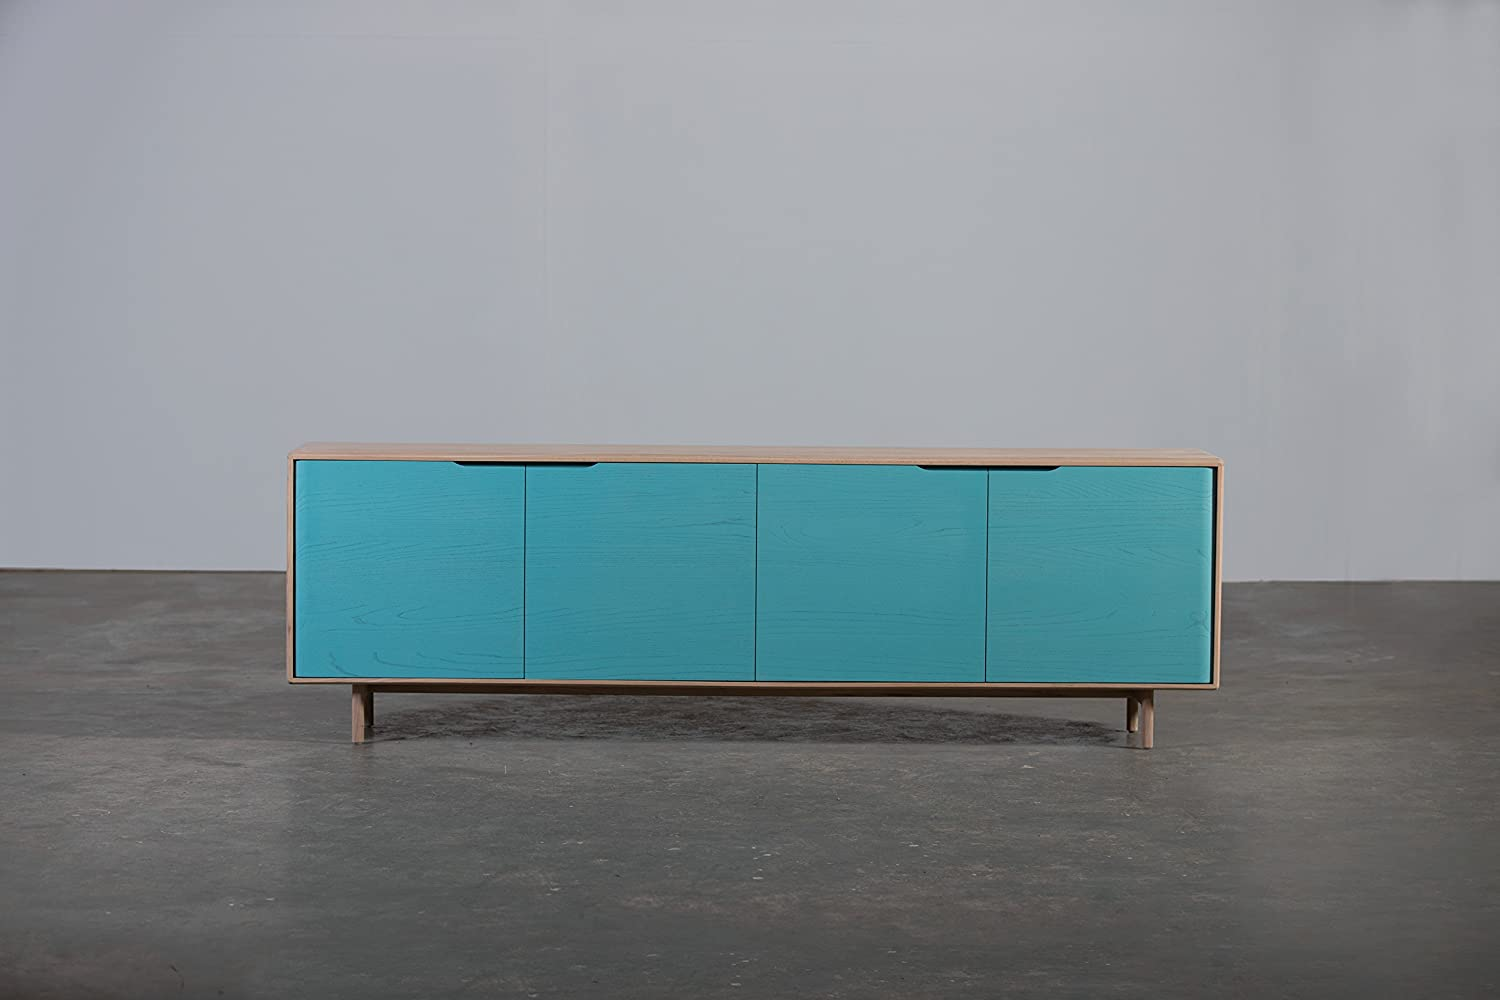 Invito Holz Sideboard Front Turkis 240x42x75 Cm Ulme Massiv